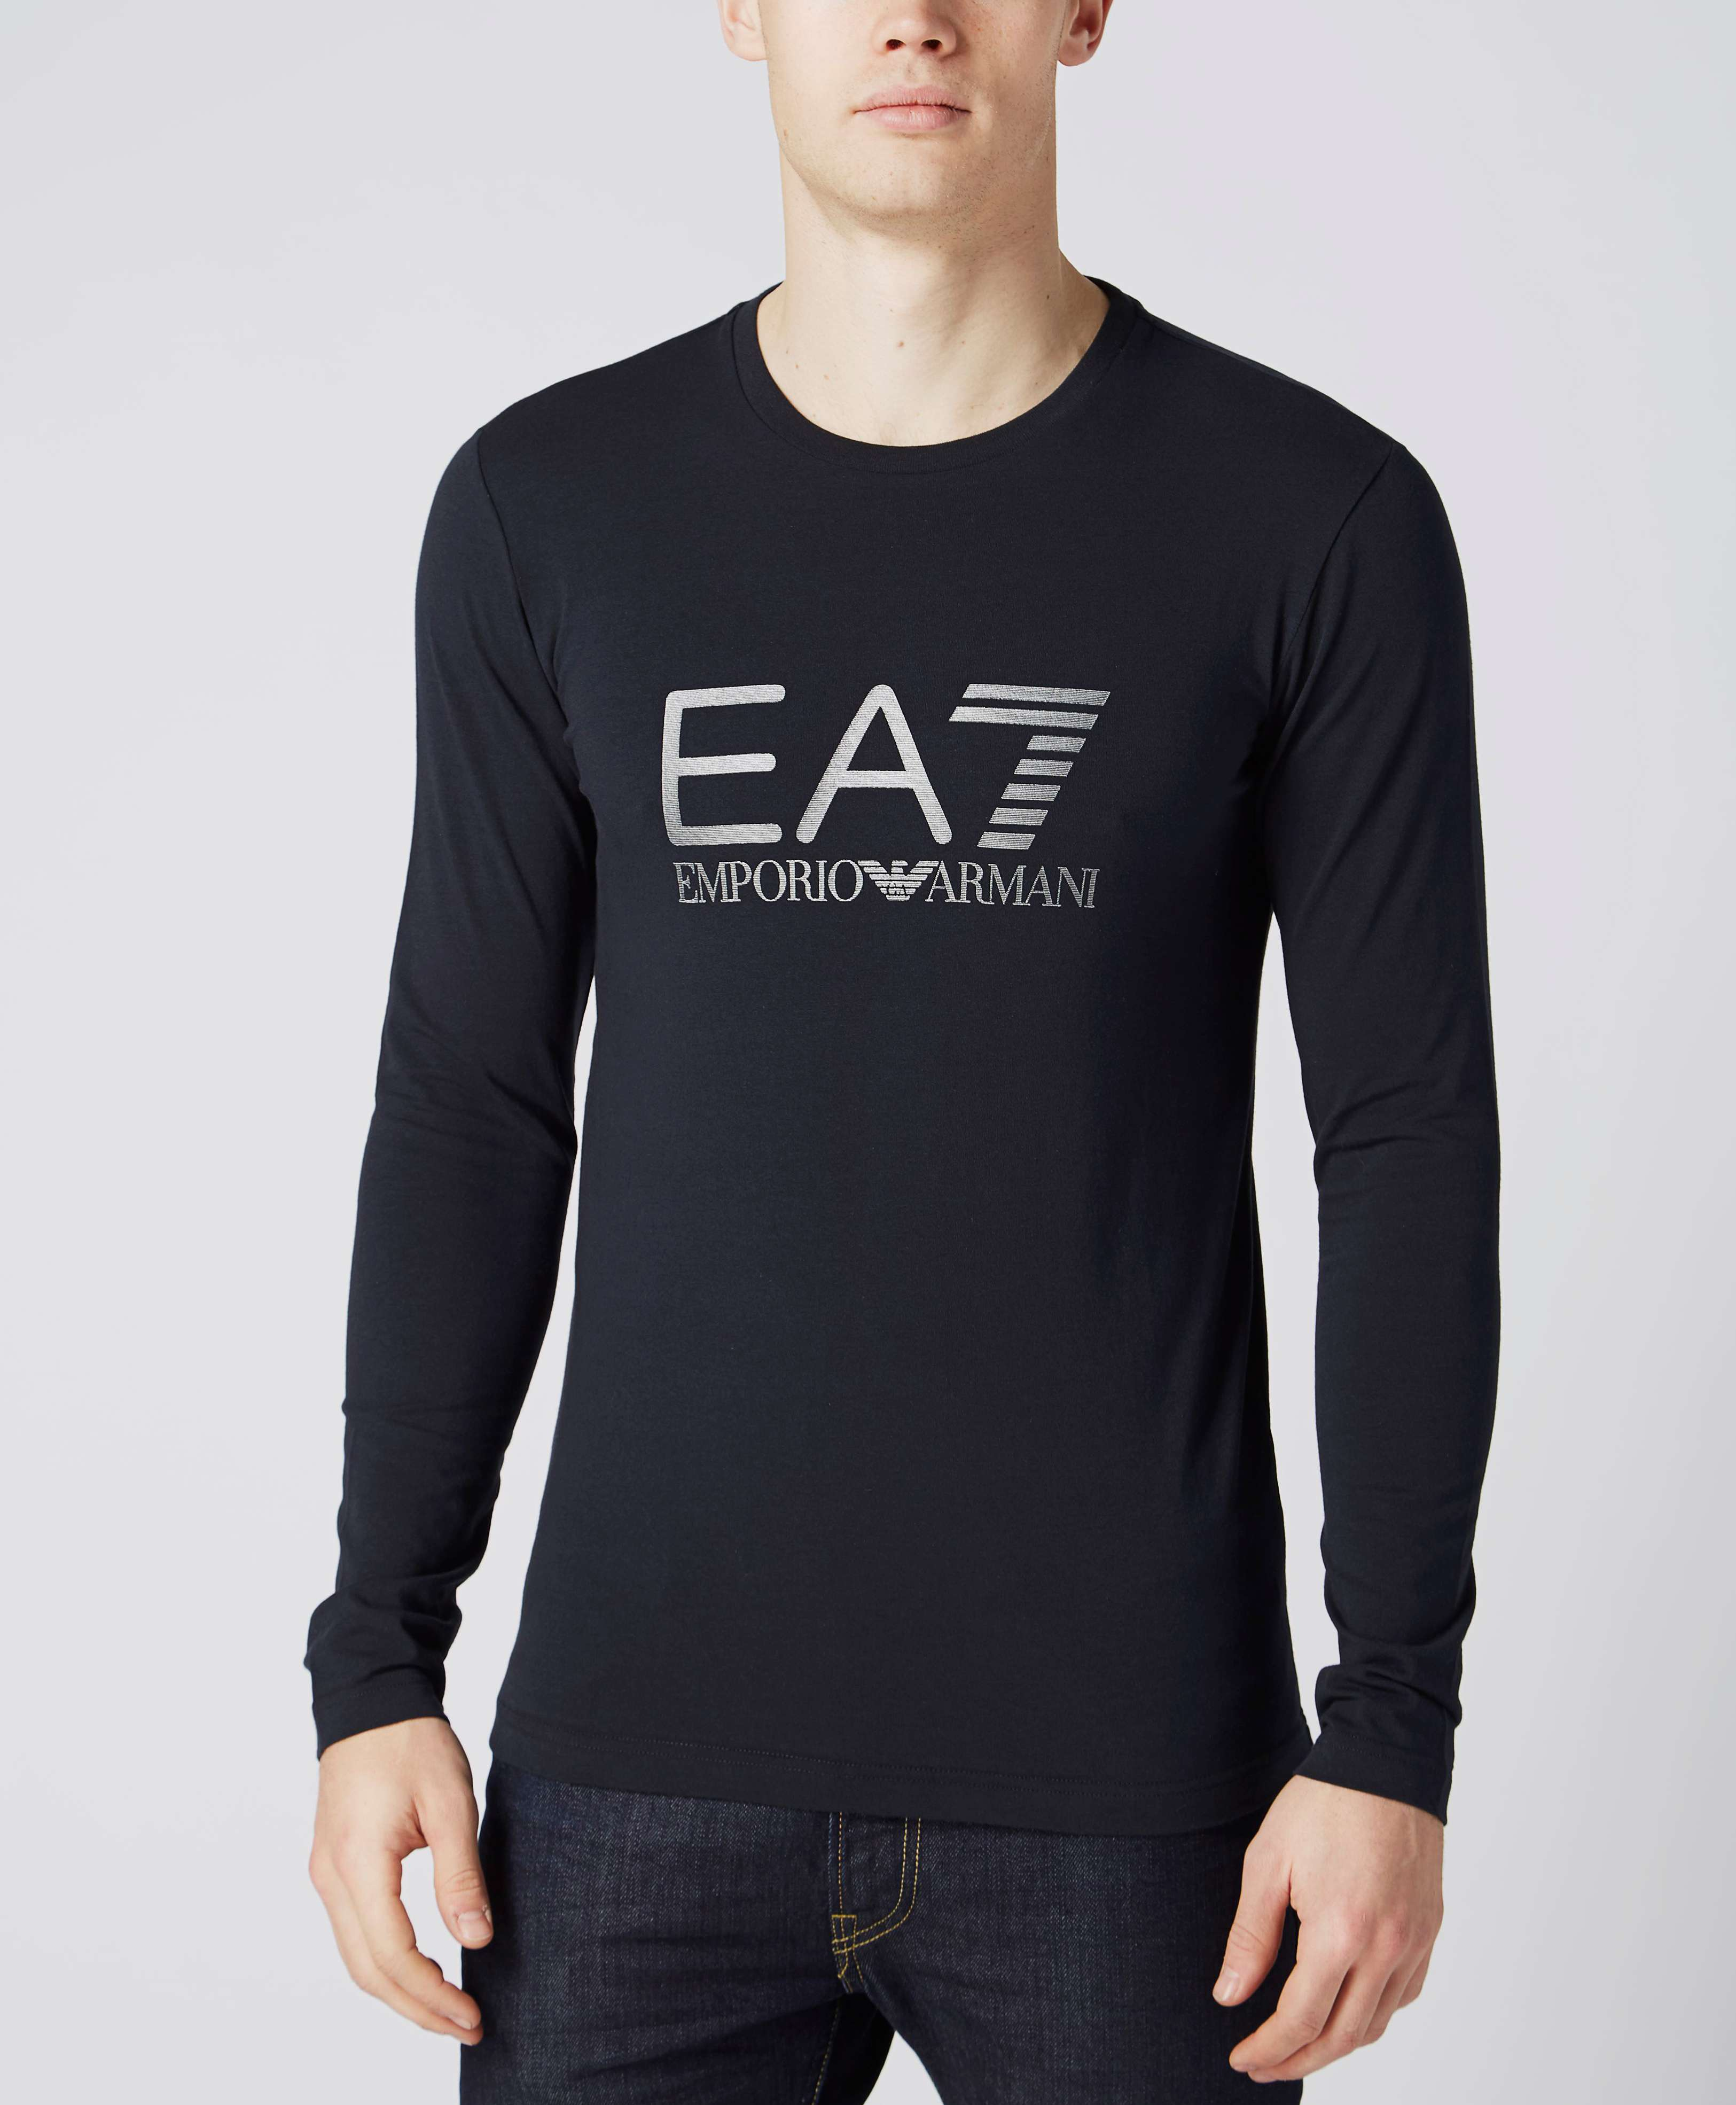 emporio armani long sleeve t shirt. Black Bedroom Furniture Sets. Home Design Ideas